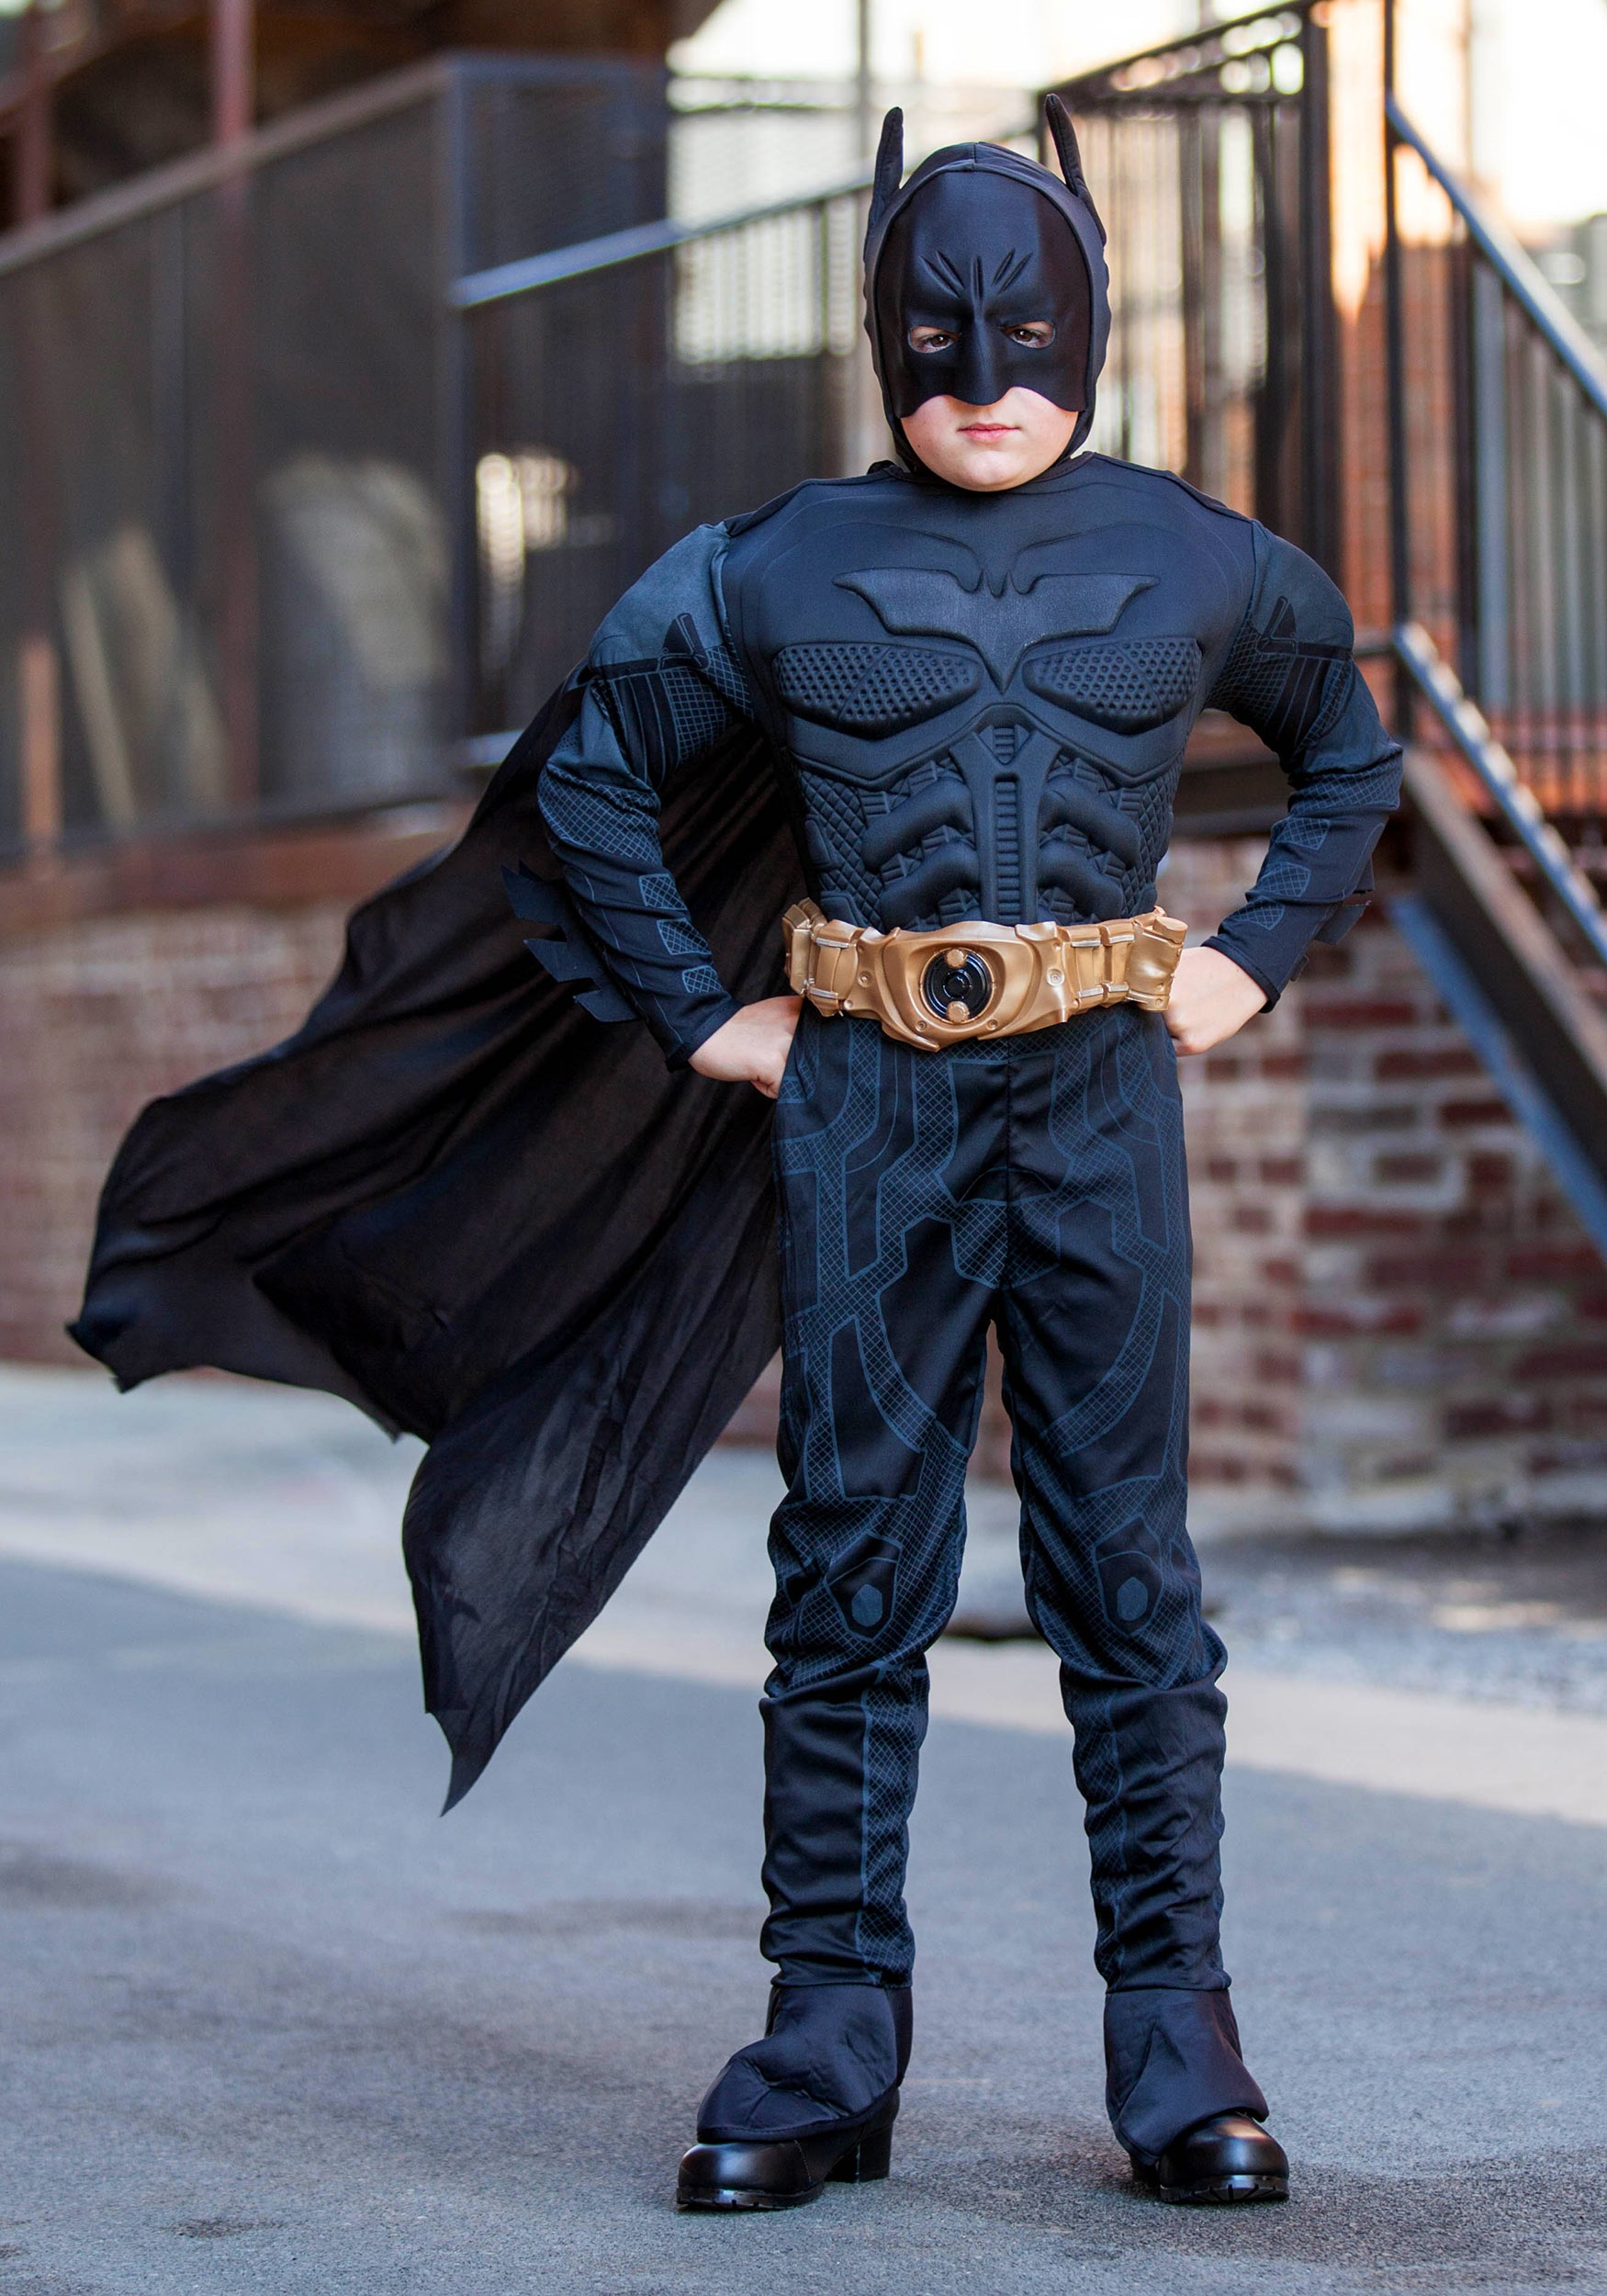 Accessorize your costume with an officially licensed Batman utility belt, Batarang, and gloves. Pick up an extra Batman mask or cape, especially sized for boys. We also carry a variety of boys Robin costumes, so you can team up with a friend.